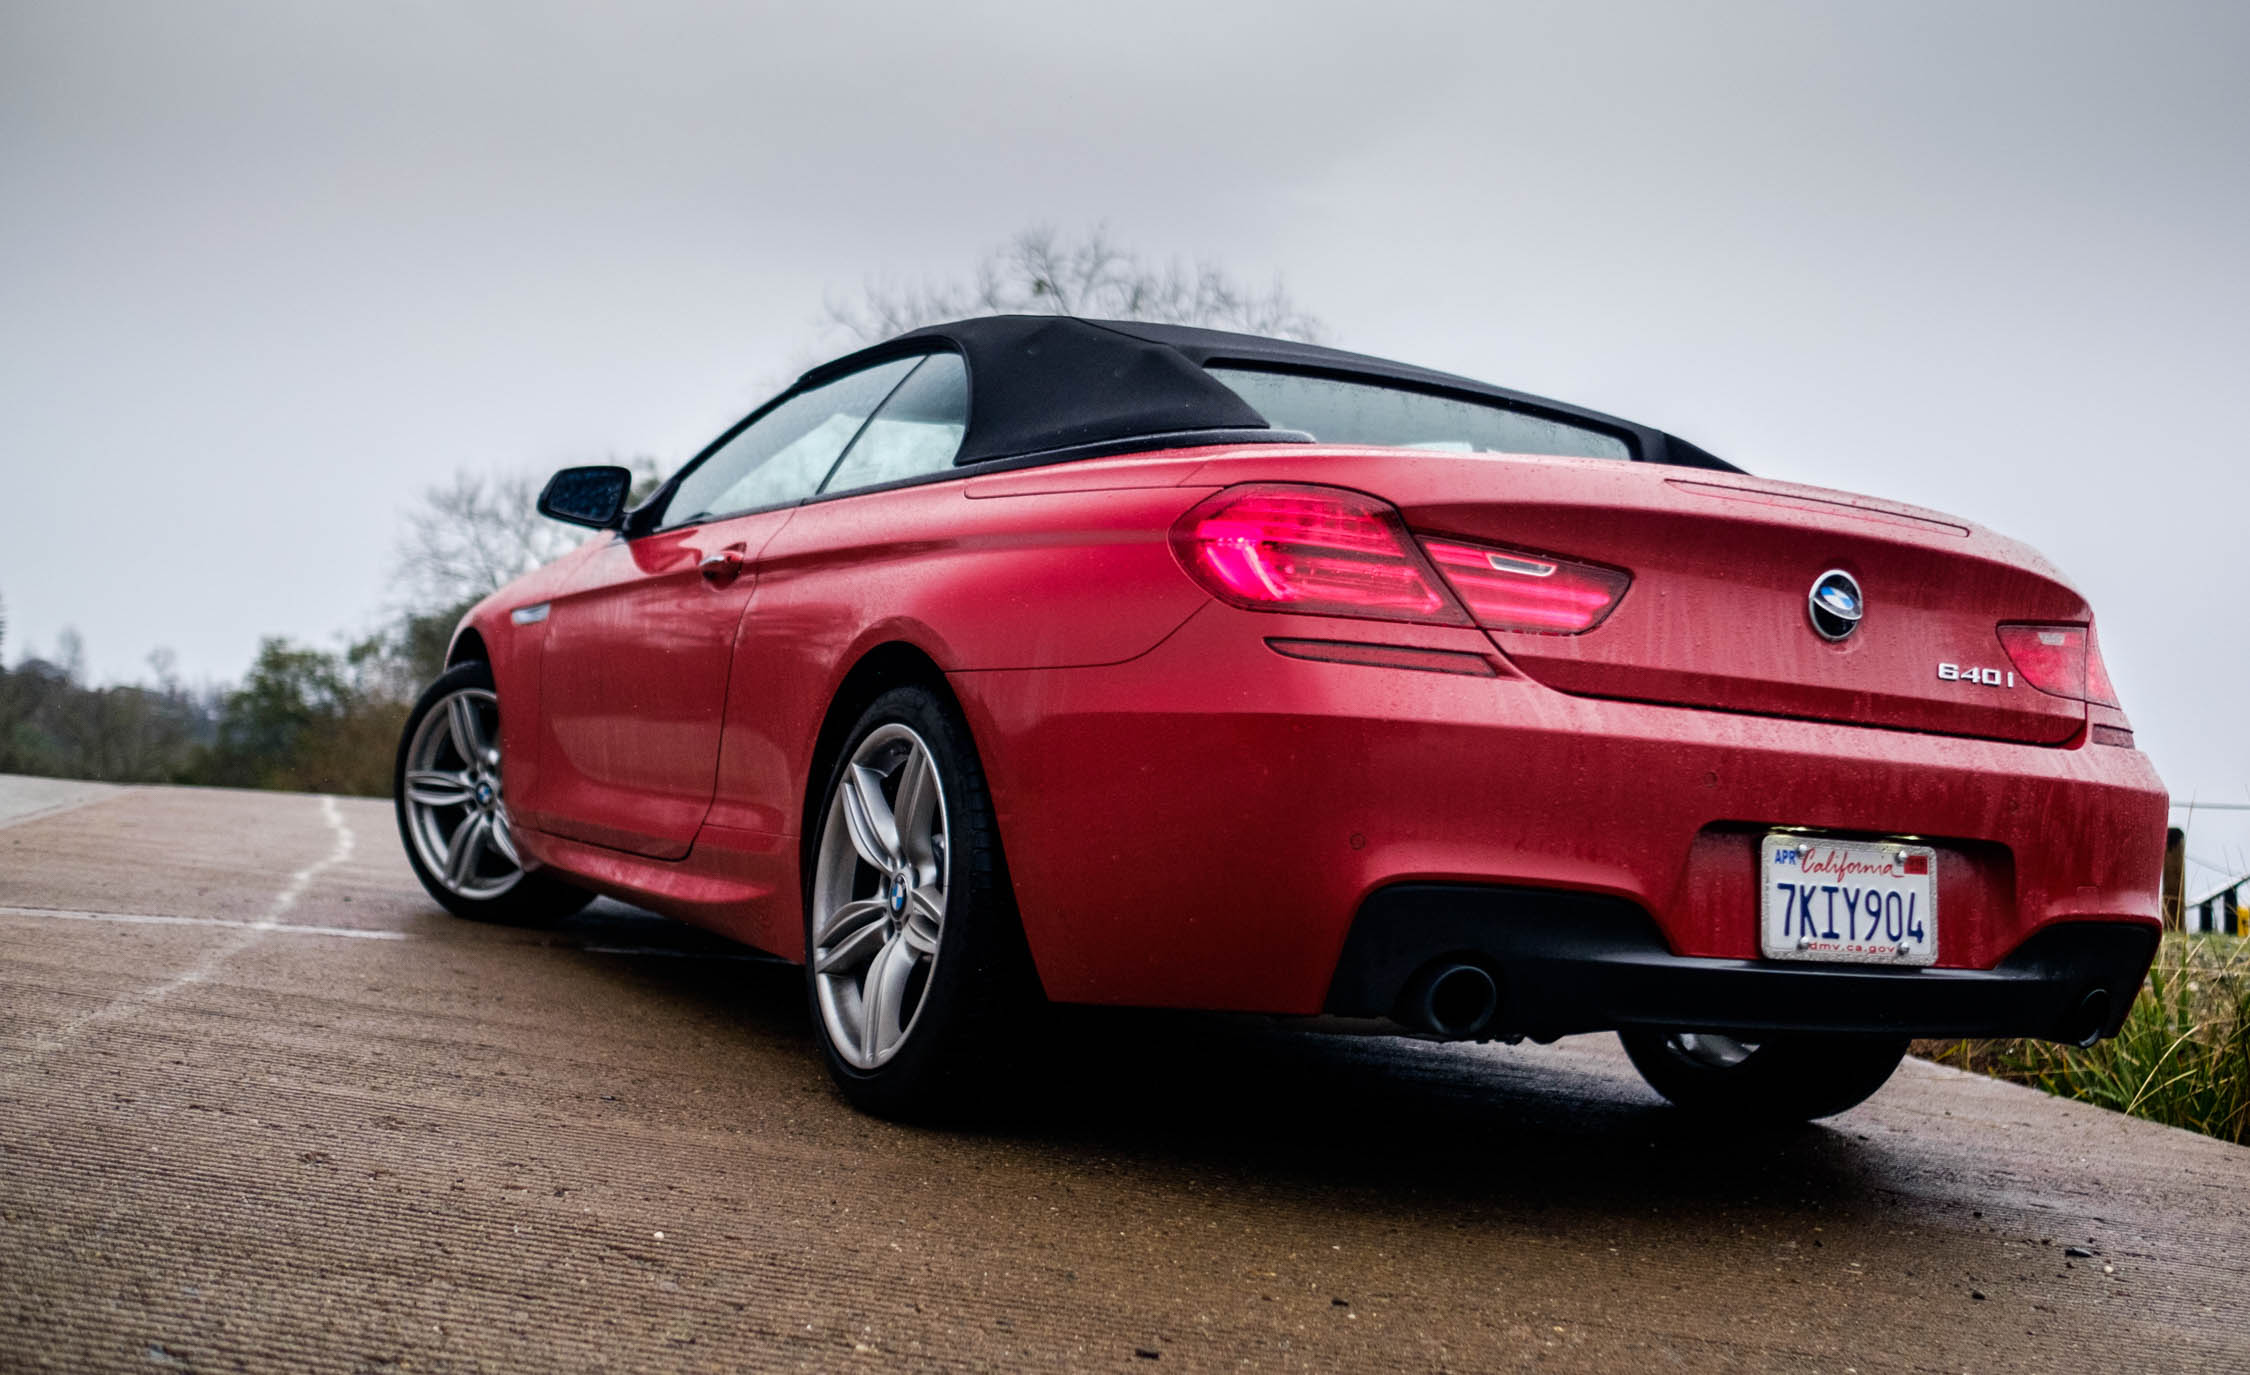 2016 BMW 640i Convertible Exterior Full Rear and Side